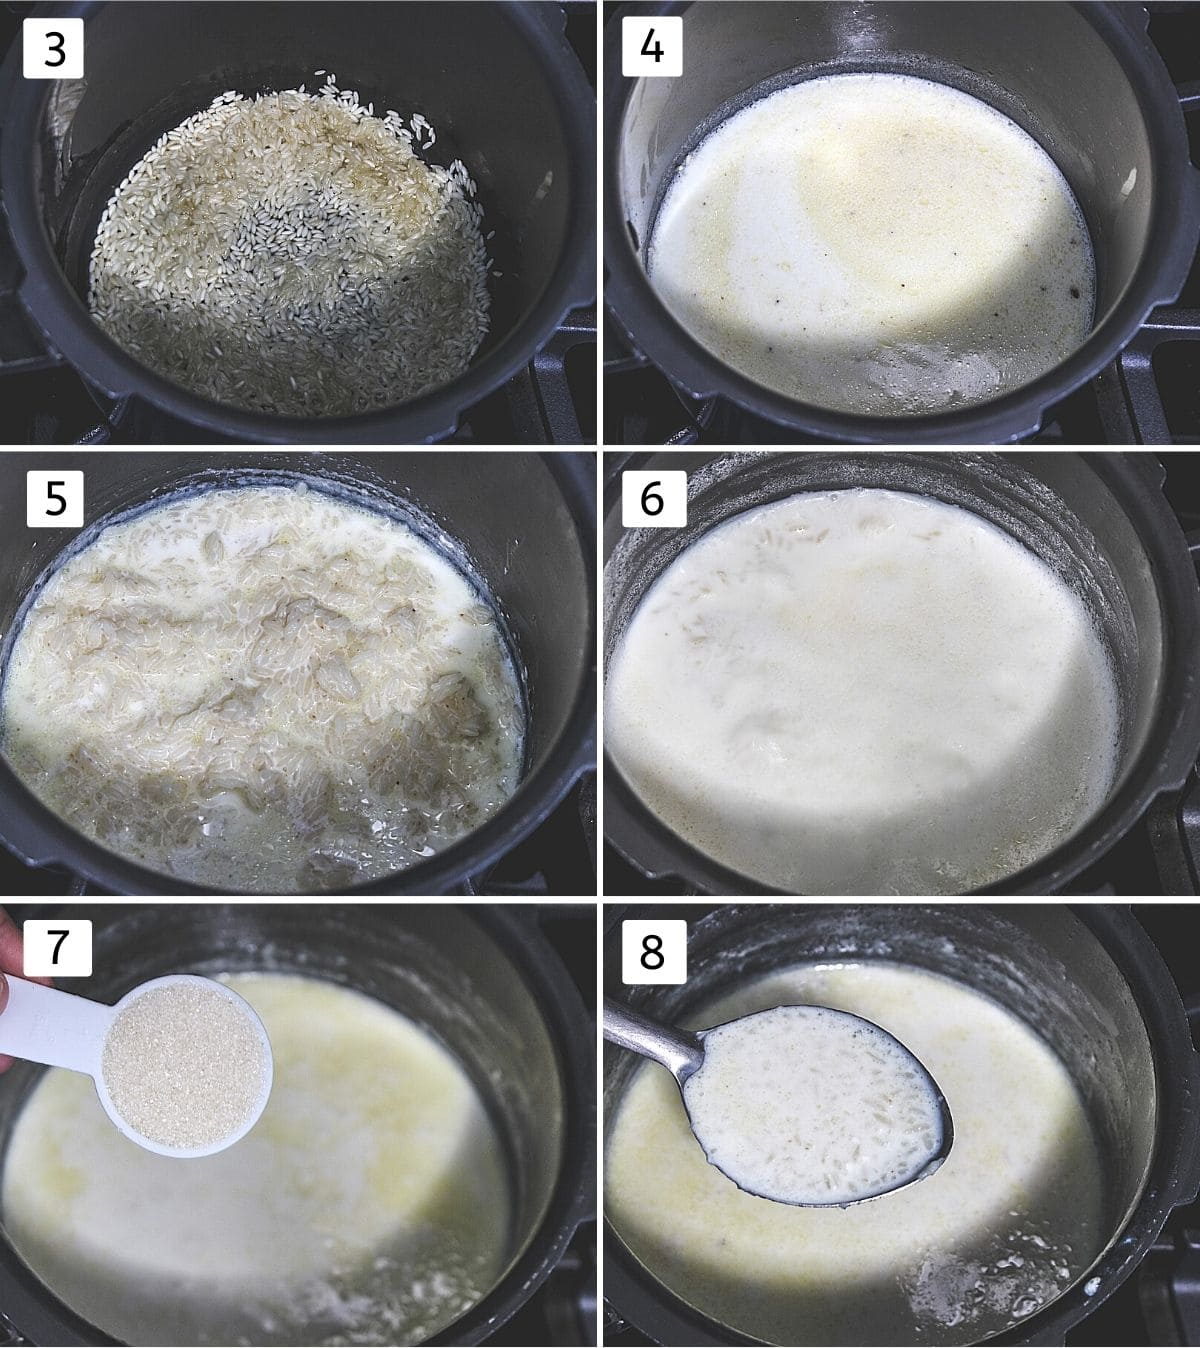 Collage of 6 images showing roasting rice, adding milk, cooked rice, added more milk, sugar, ladleful of payasam